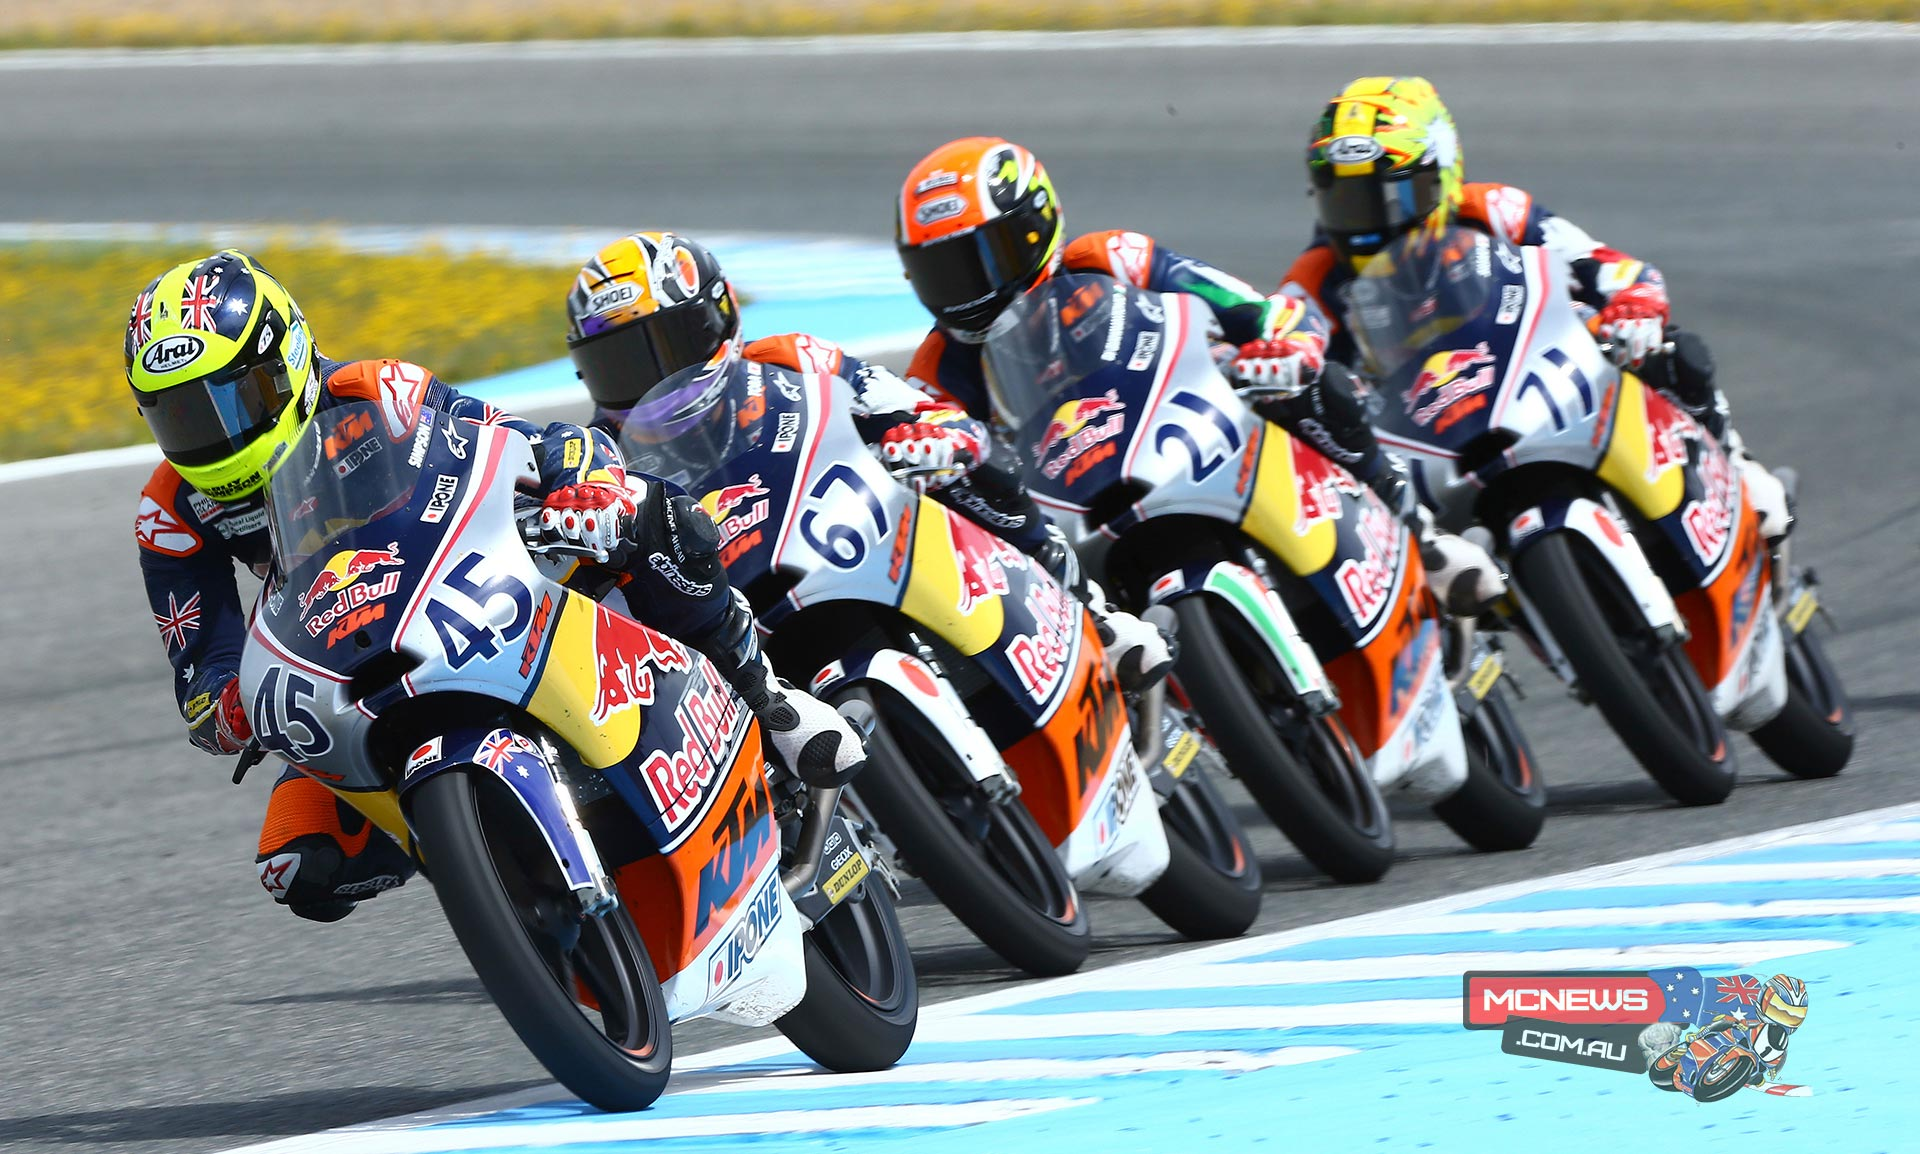 Olly Simpson leads the pack at the Jerez Red Bull Rookies Cup season 2015 opener